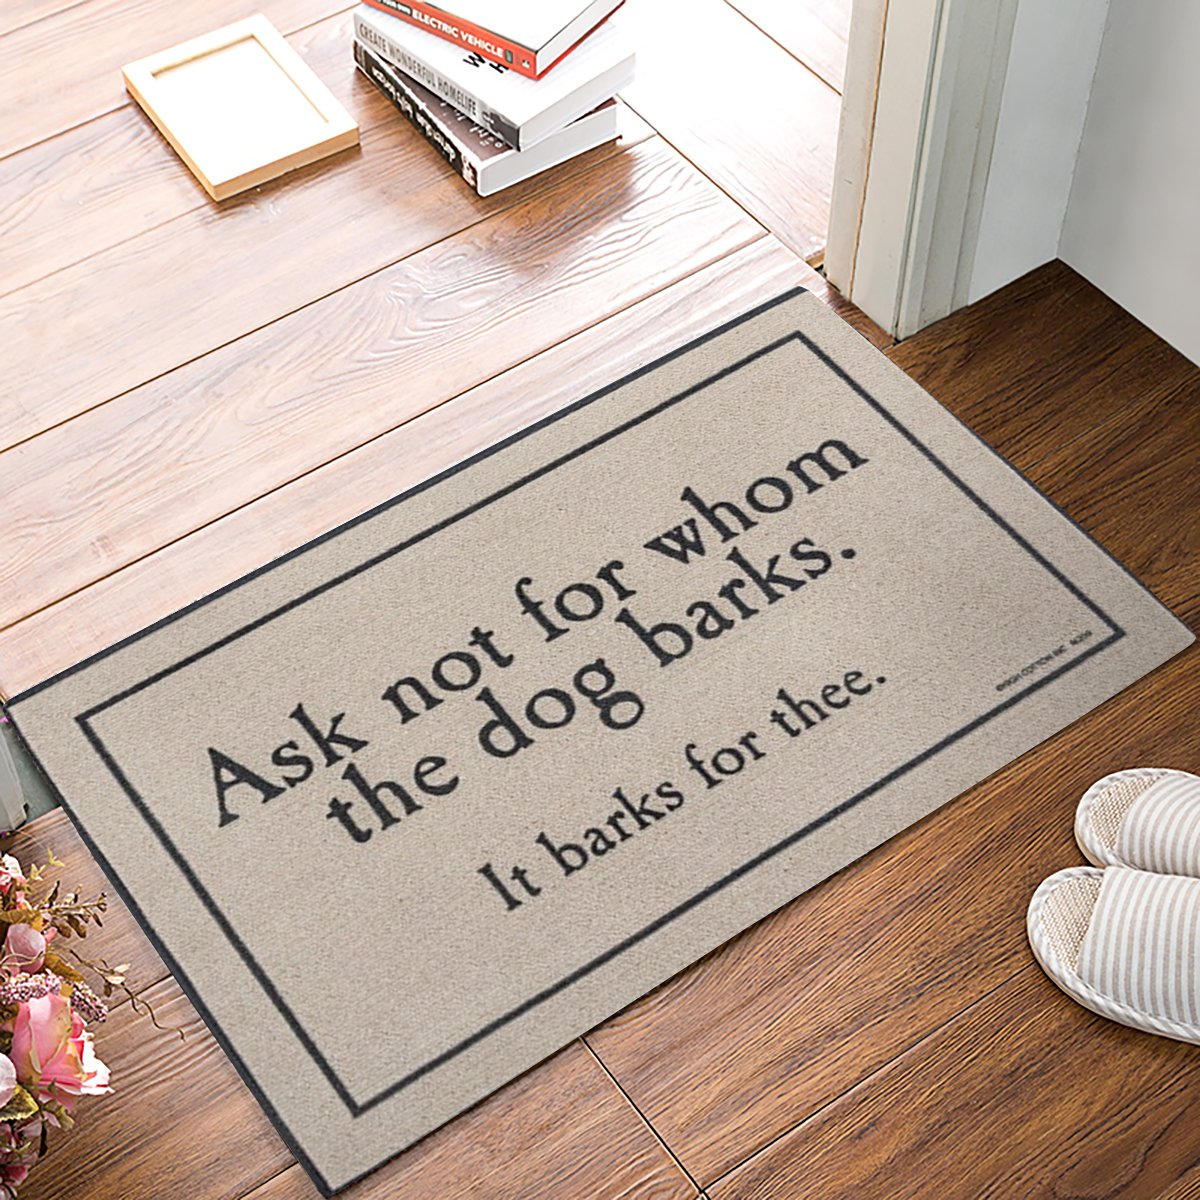 KAROLA Ask Not For Whom The Dog Barks Welcome Doormat Indoor Rug 23.6 x 15.7 inches,Durable Non-Slip